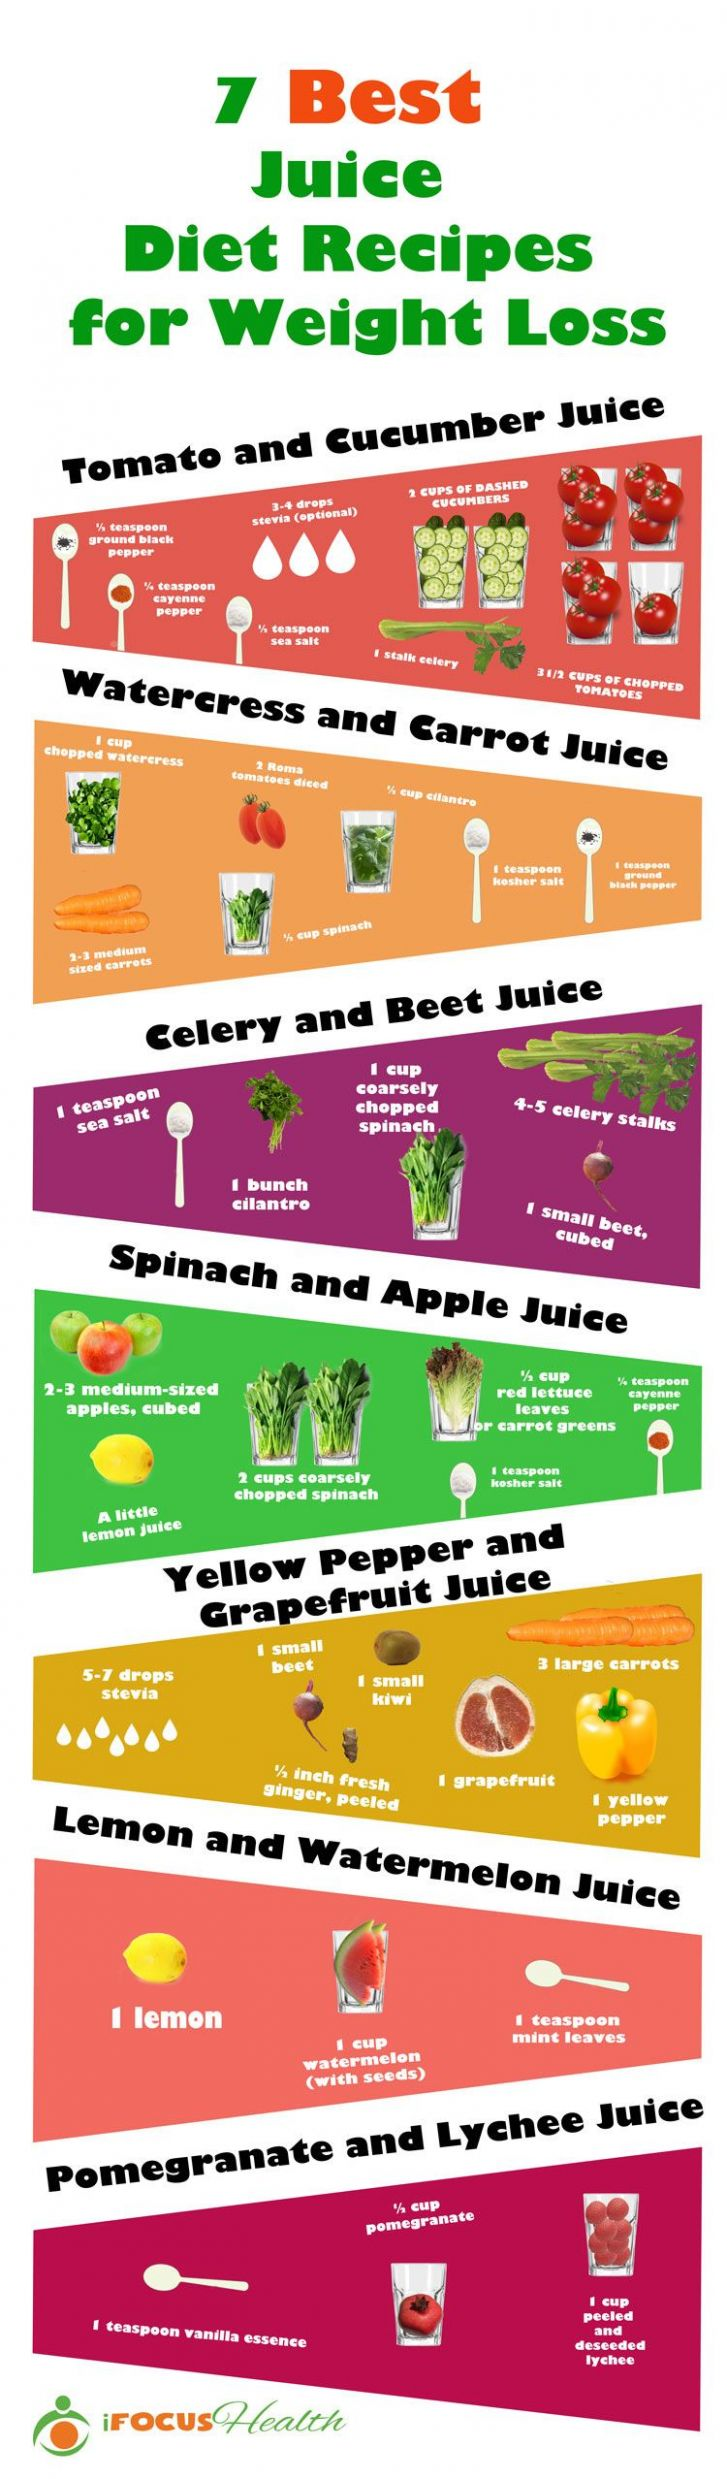 8 Simple Juicing Recipes for Weight Loss (Infographic) - Juicer Recipes For Weight Loss That Taste Good